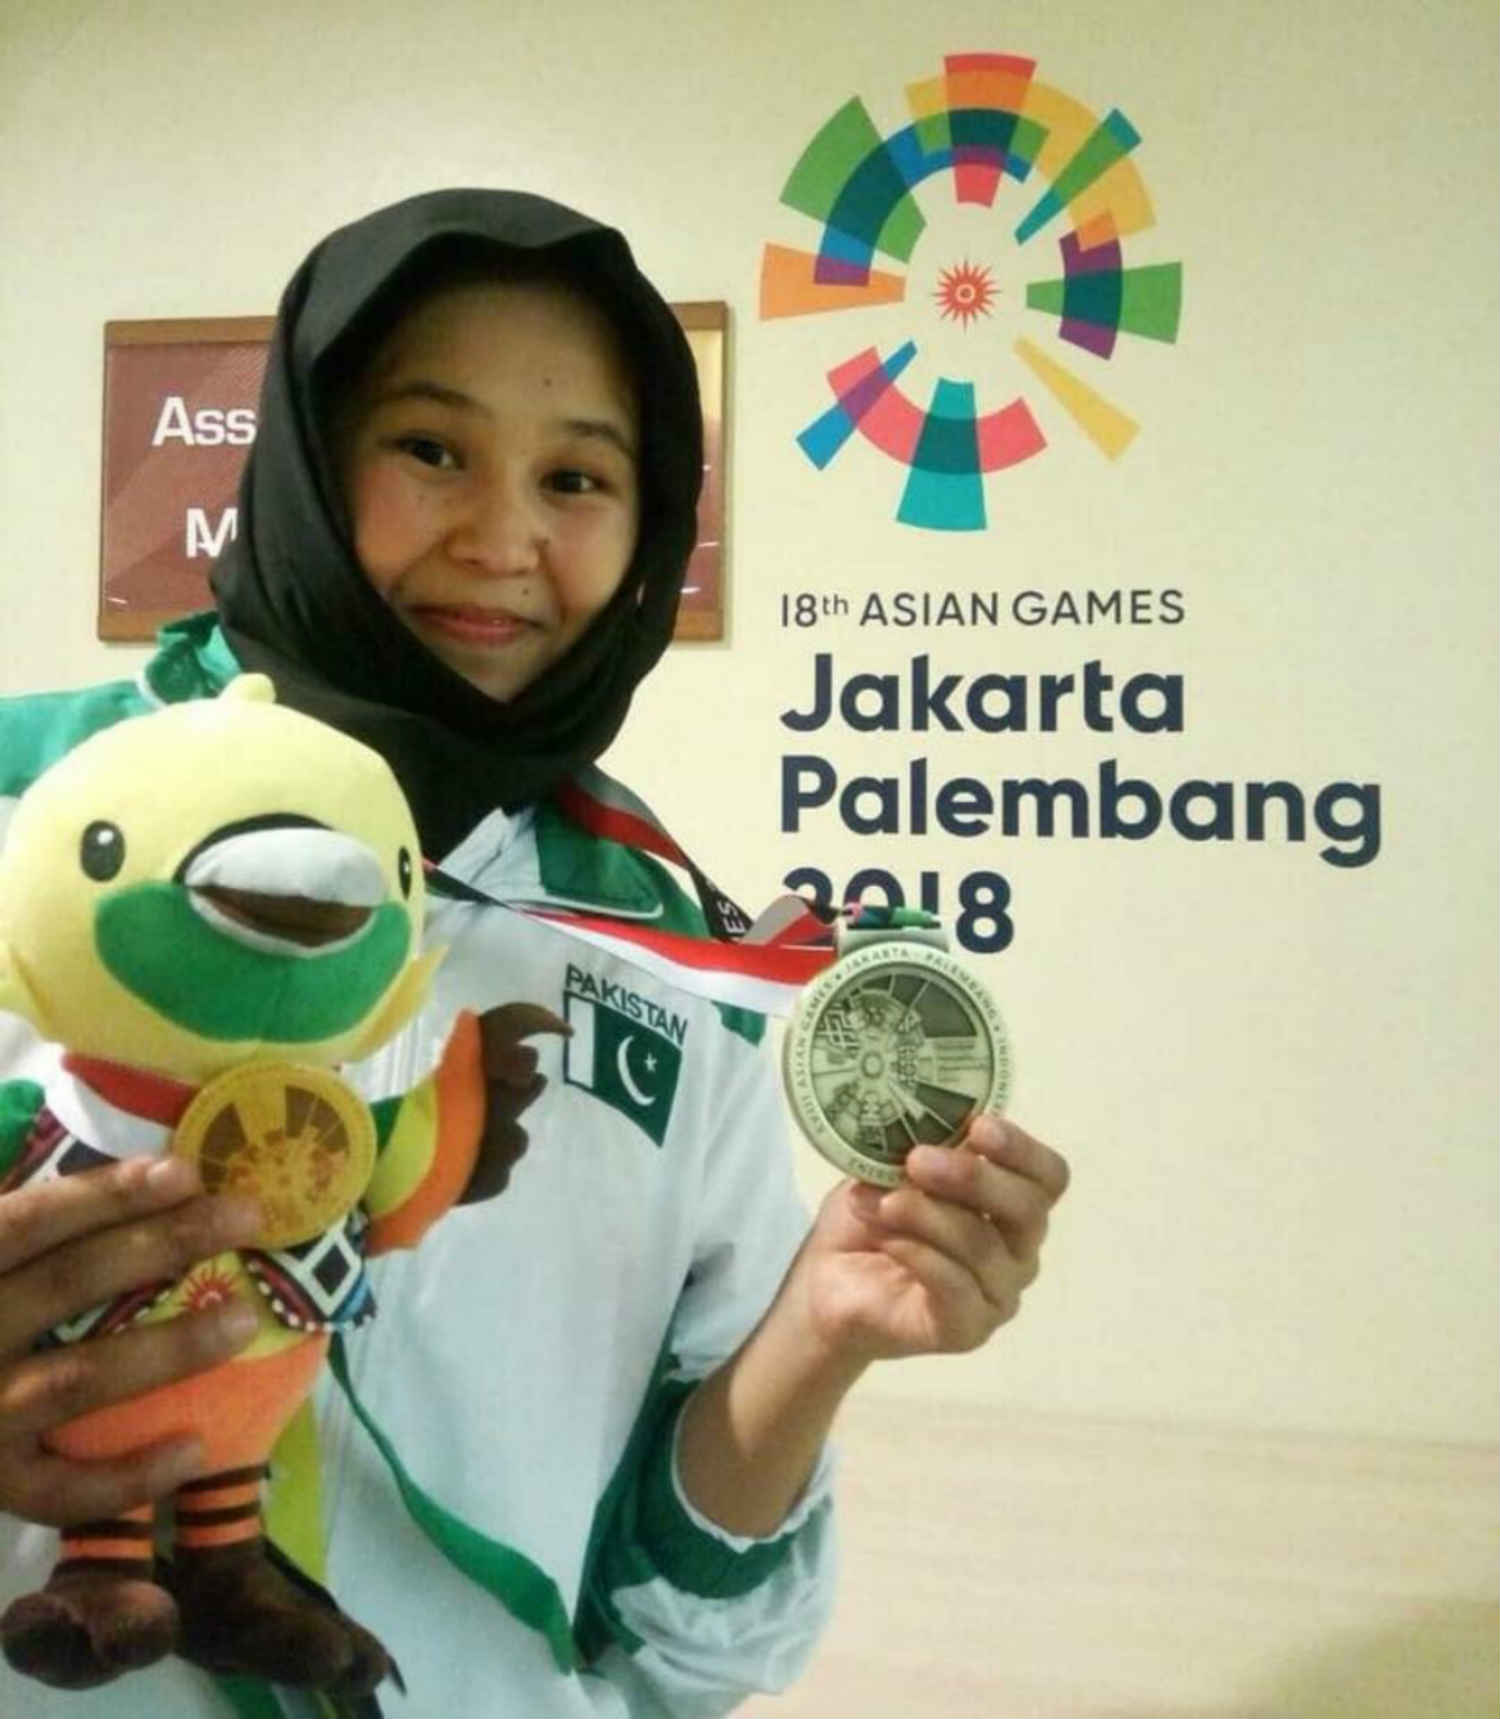 Karate: Another Medal For Pakistan